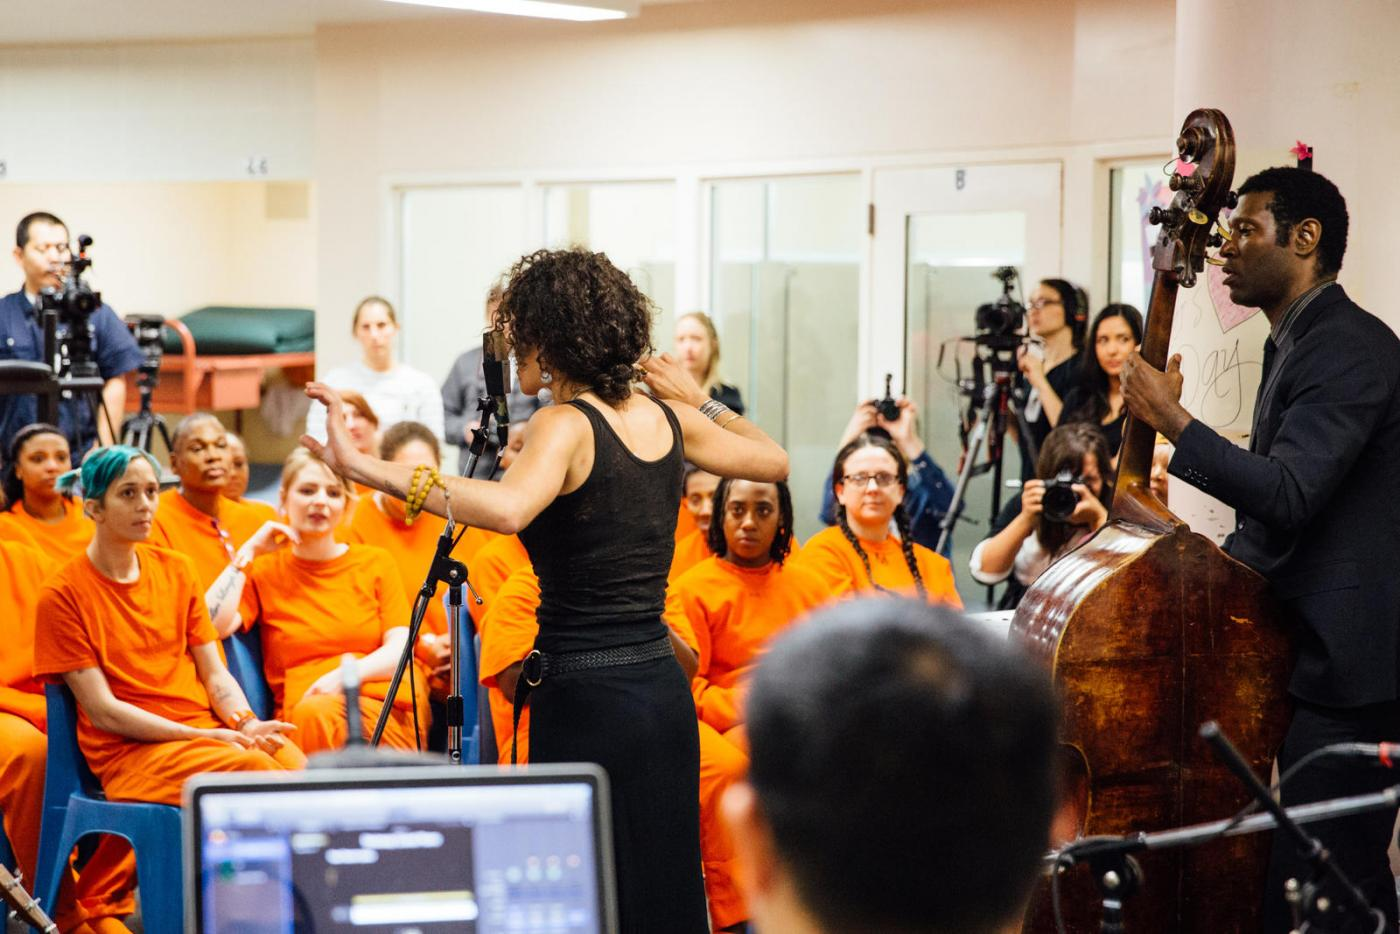 A woman and band with cello conduct a concert in front of a crowd of incarcerated women.